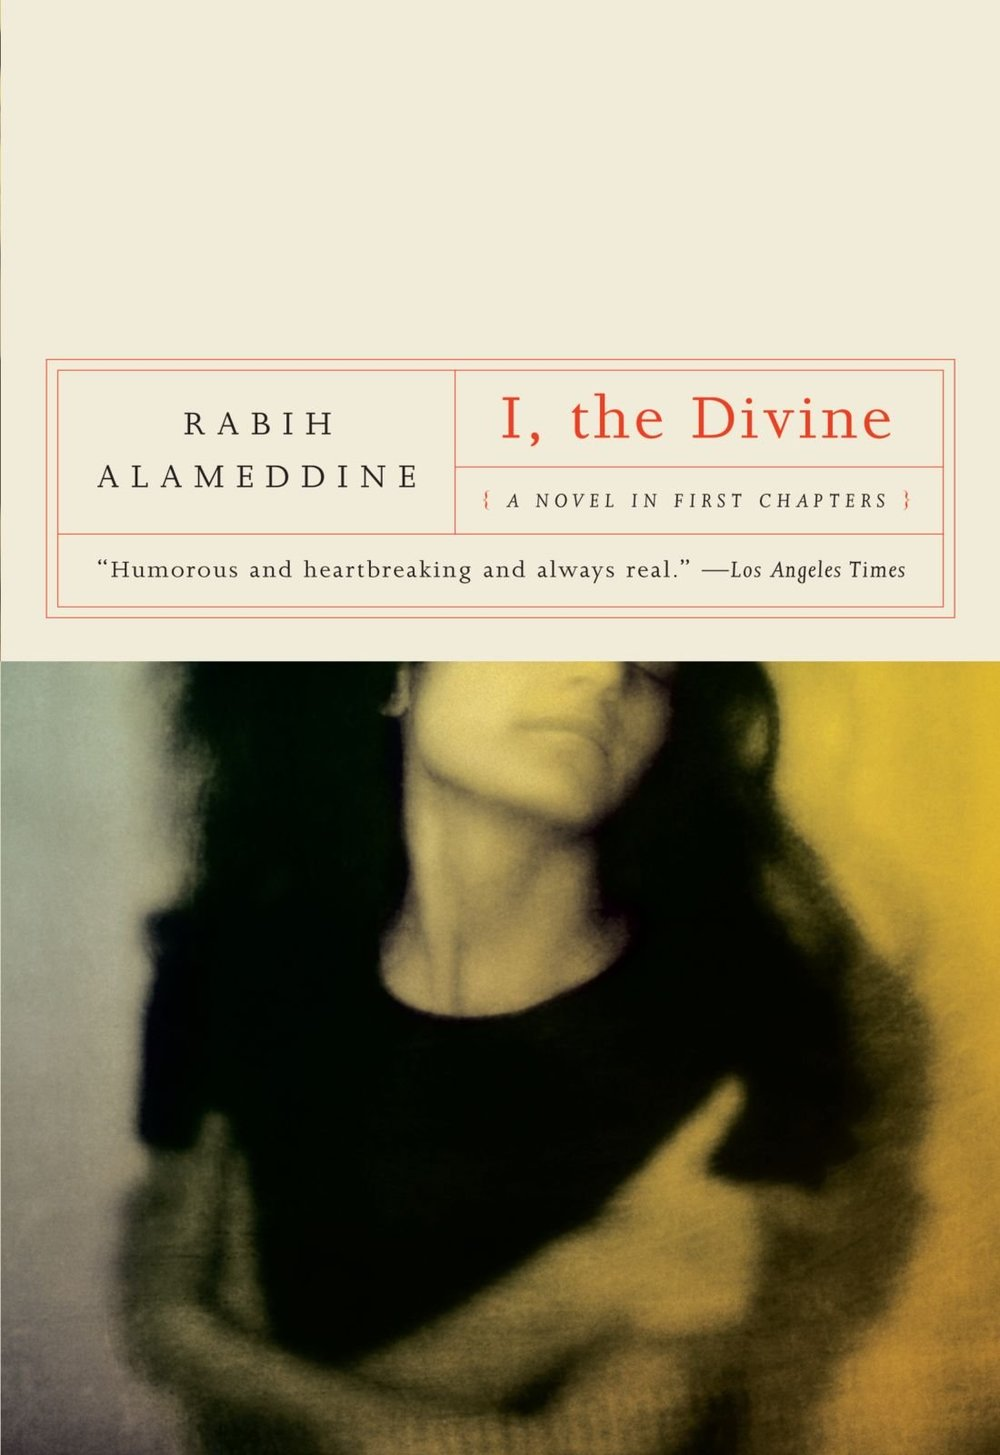 Hannah: I, The Divine - by Rabih Alameddine (W. W. Norton & Company)I, the Divine is a fragmented story of Sarah Nour El-Din, a woman seeking to create space for herself amongst conflict: civil war, family upheaval, divorce, and infidelity. The novel is told entirely through Sarah's attempts at a first chapter of an autobiographical novel/memoir. Each chapter reveals a different vignette—some delivered drunk, entirely in French, or scrapped mid-sentence—that come together to shape a portrait of her life between the United States and Lebanon.